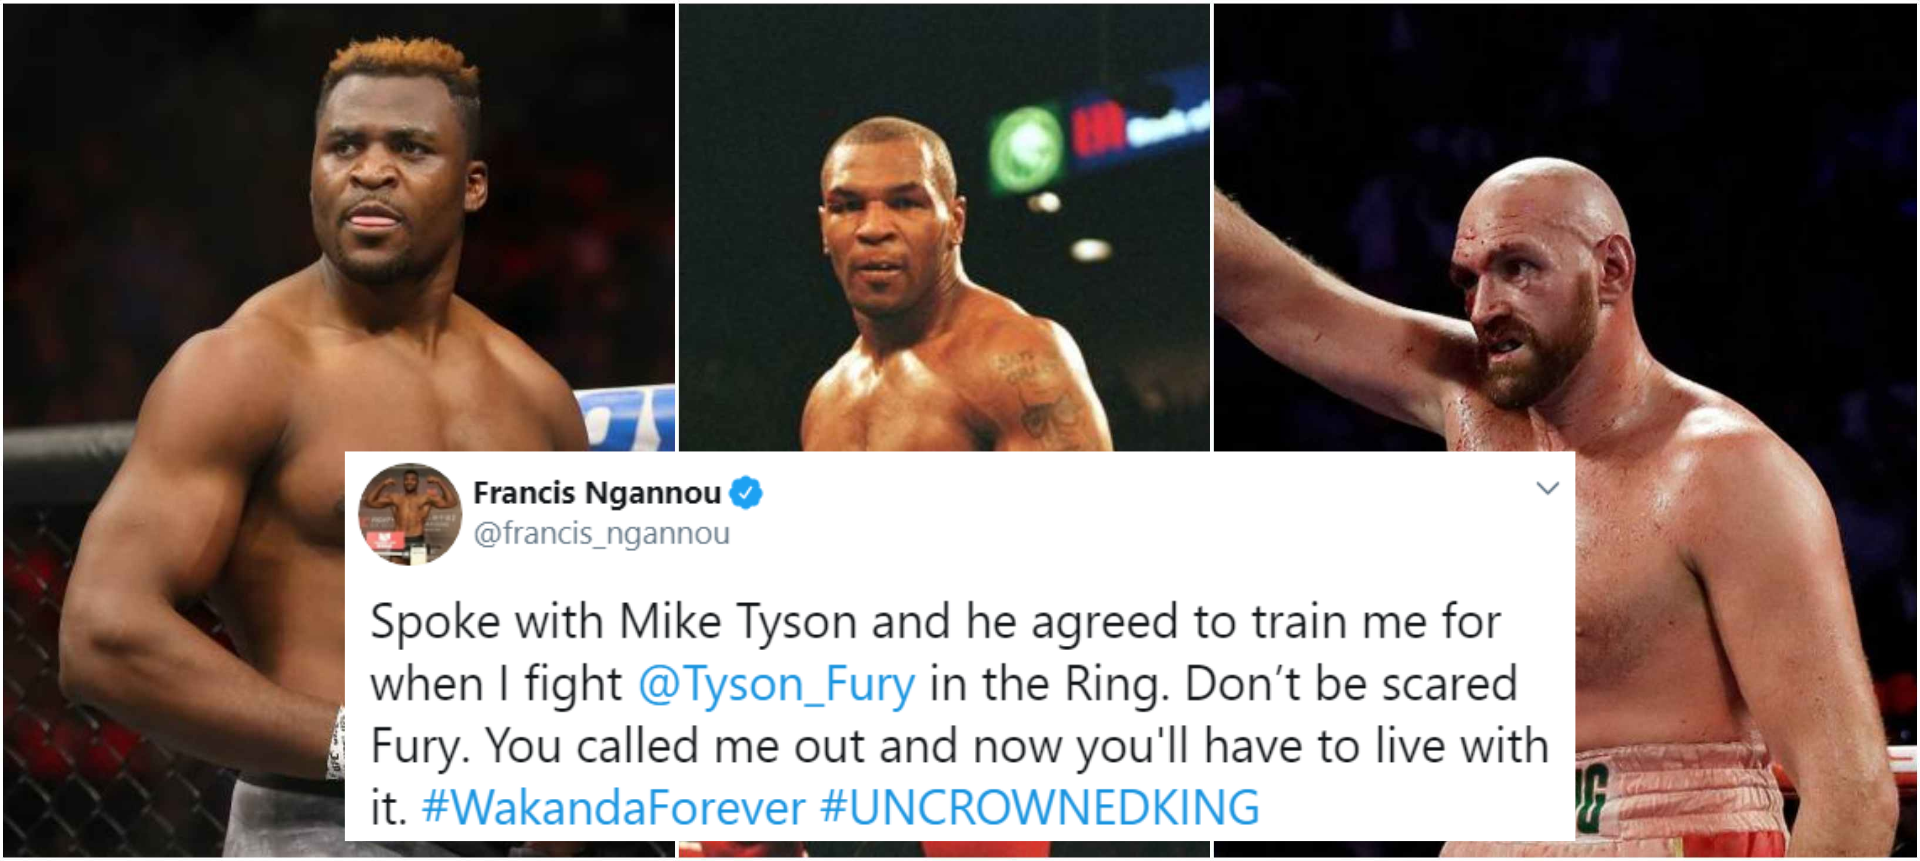 Mike Tyson agrees to train Francis Ngannou if he fights Tyson Fury - Fury